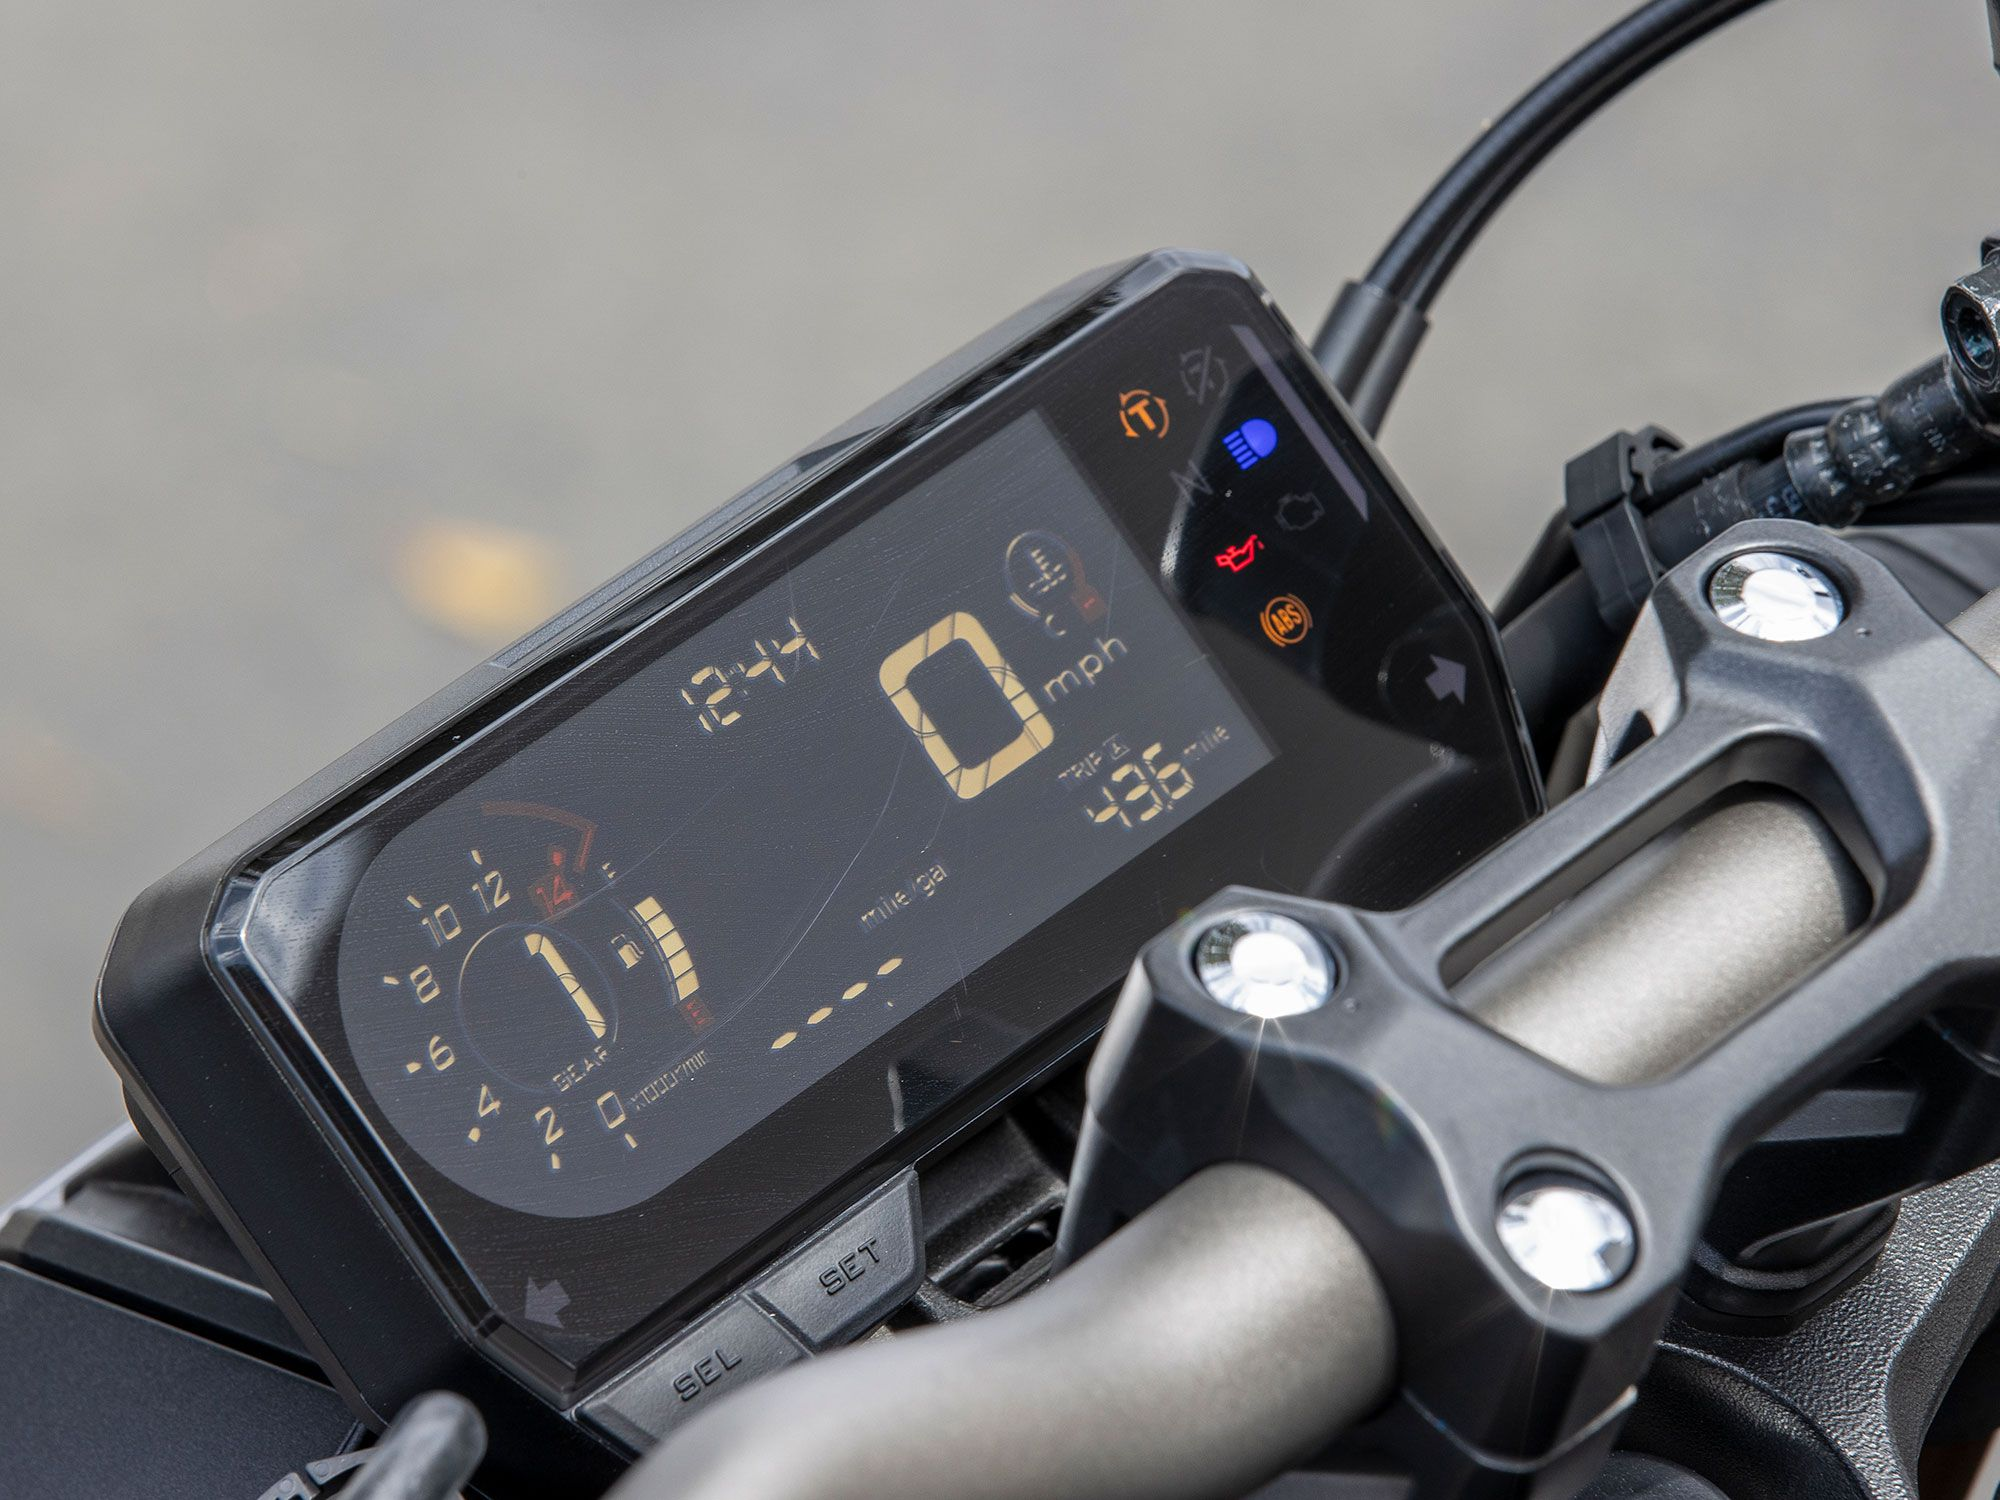 The CB650R sees a number of revisions in the 2021 model year. This LCD display has been repositioned to combat sun glare, while fonts have been changed to increase visibility of important information.